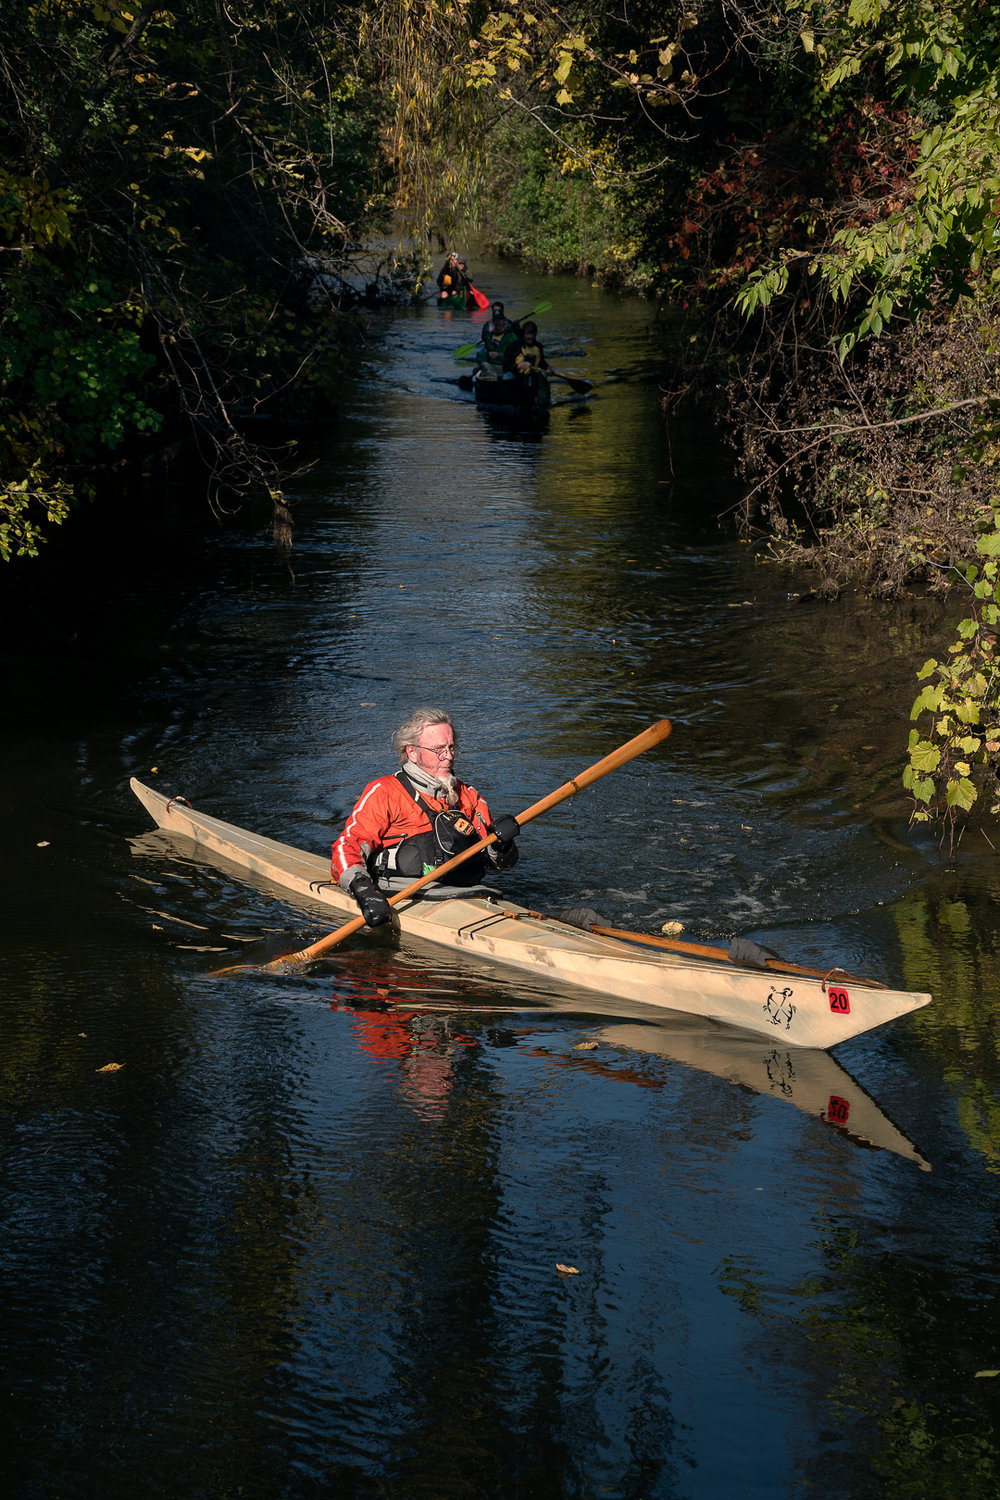 A kayaker approaches the portage at Bassett Creek.